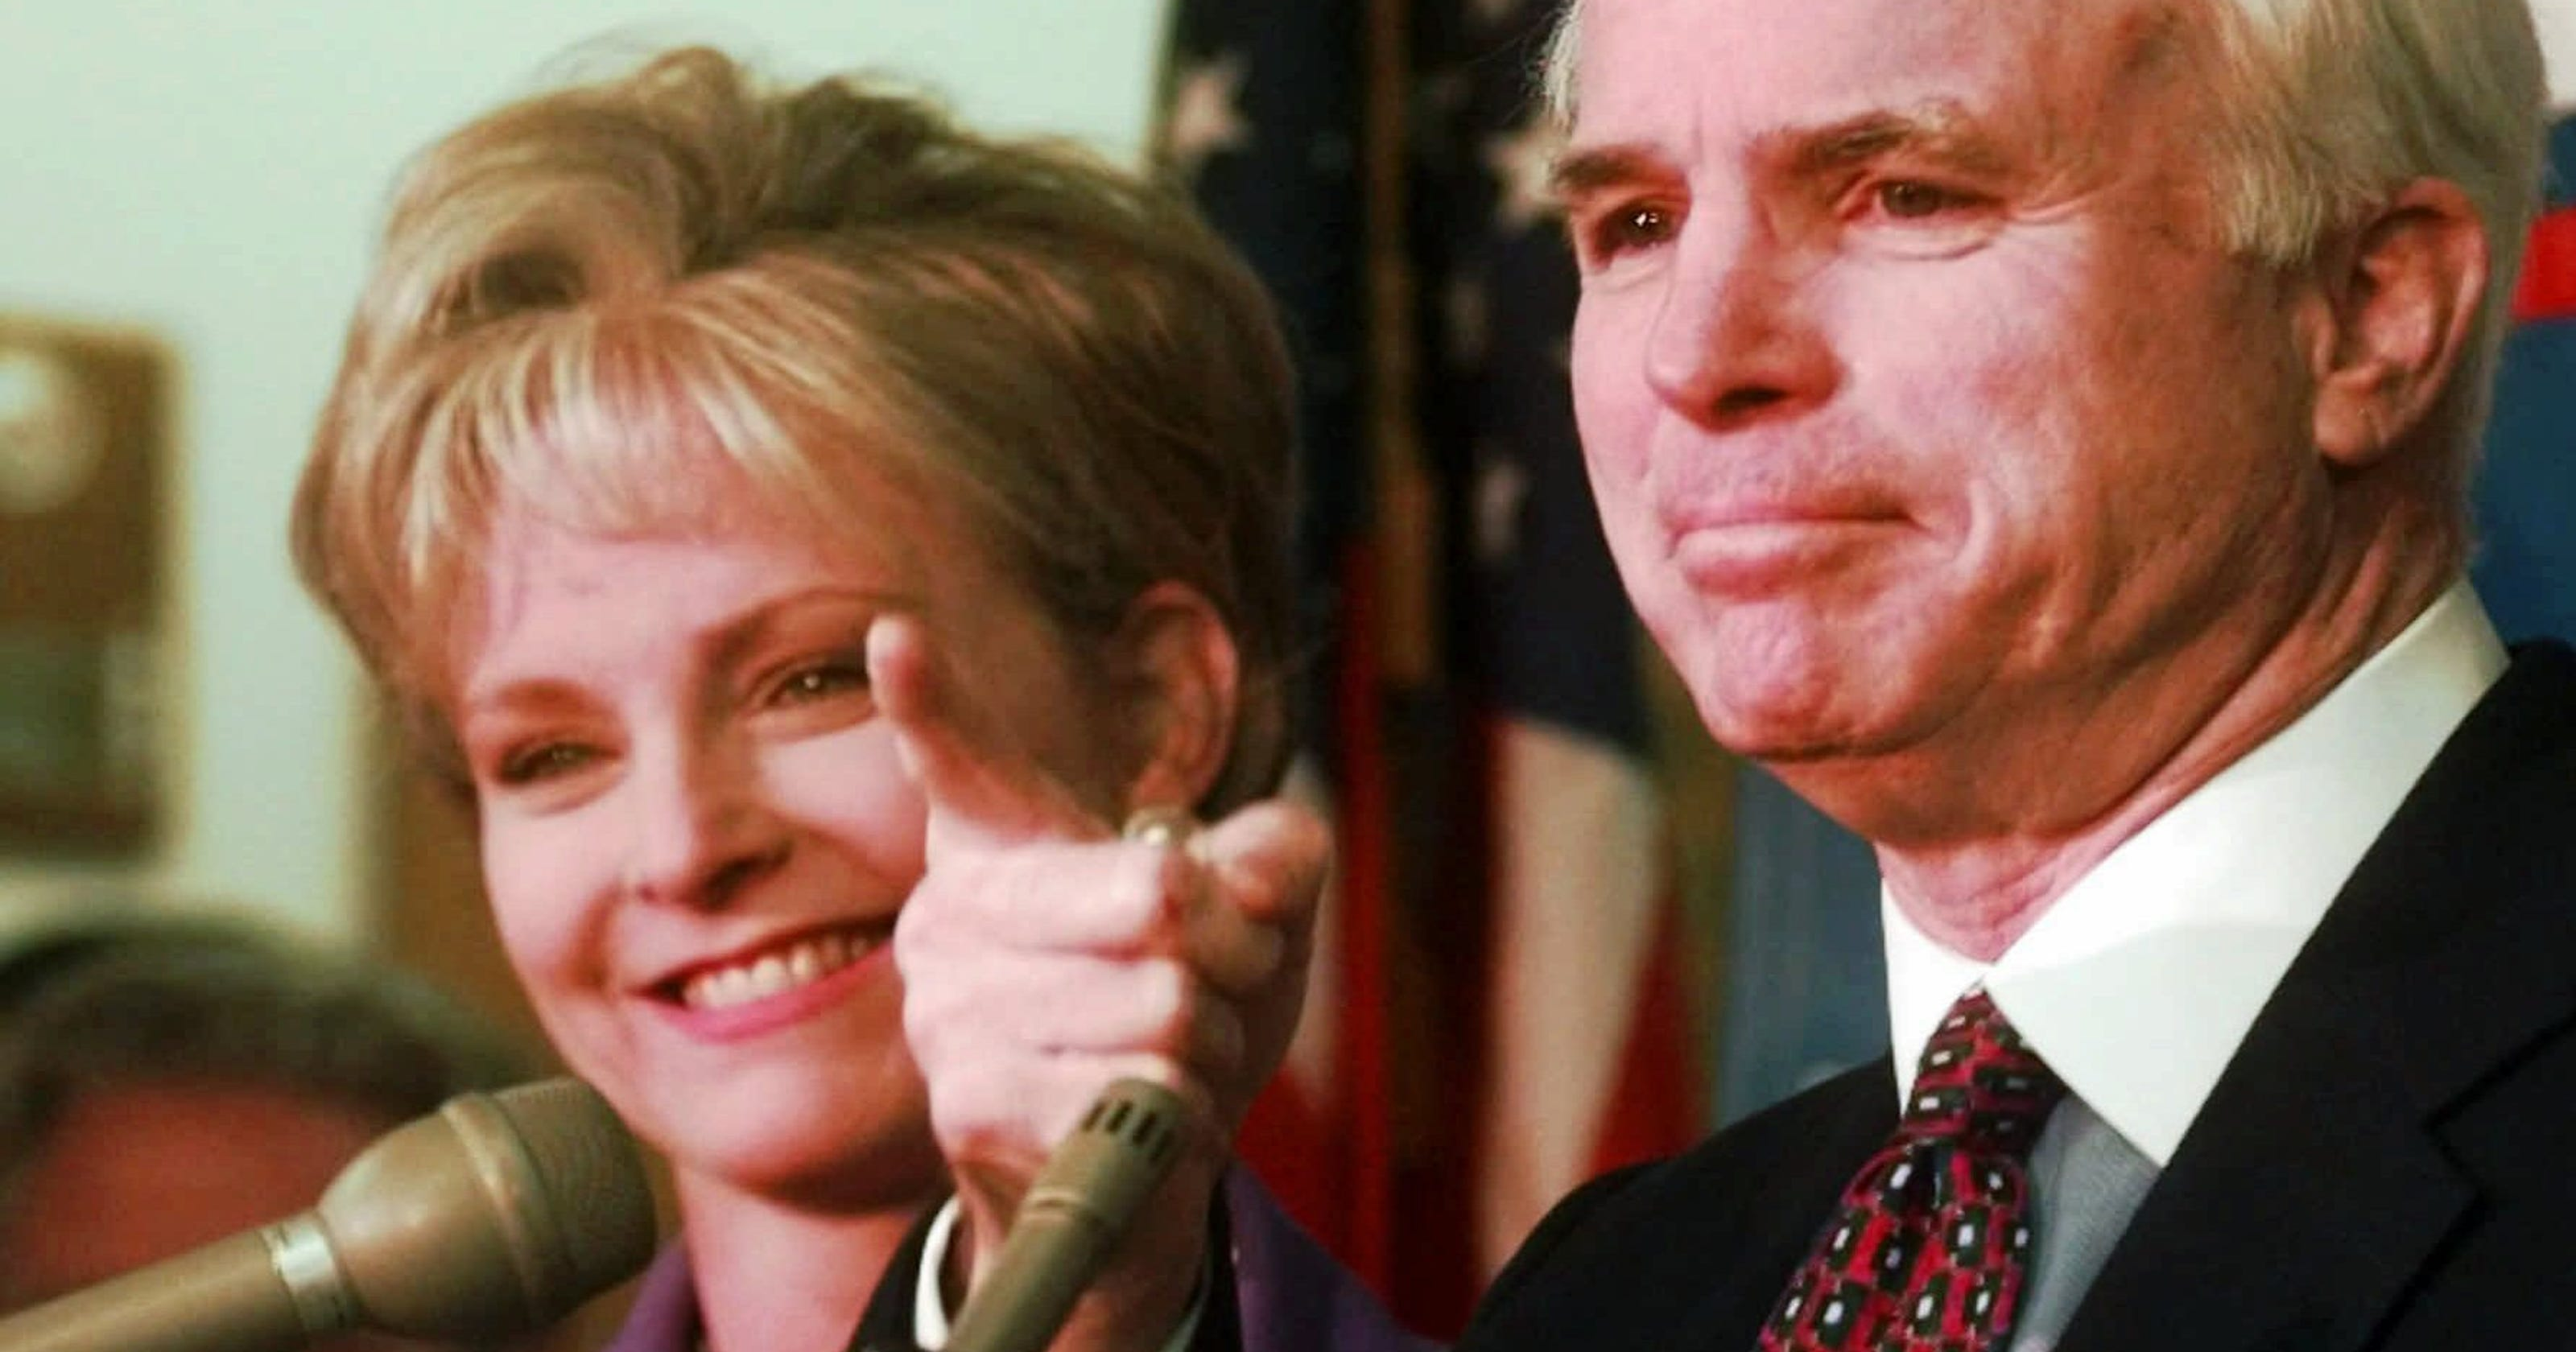 John Mccain The Maverick Took On Washington